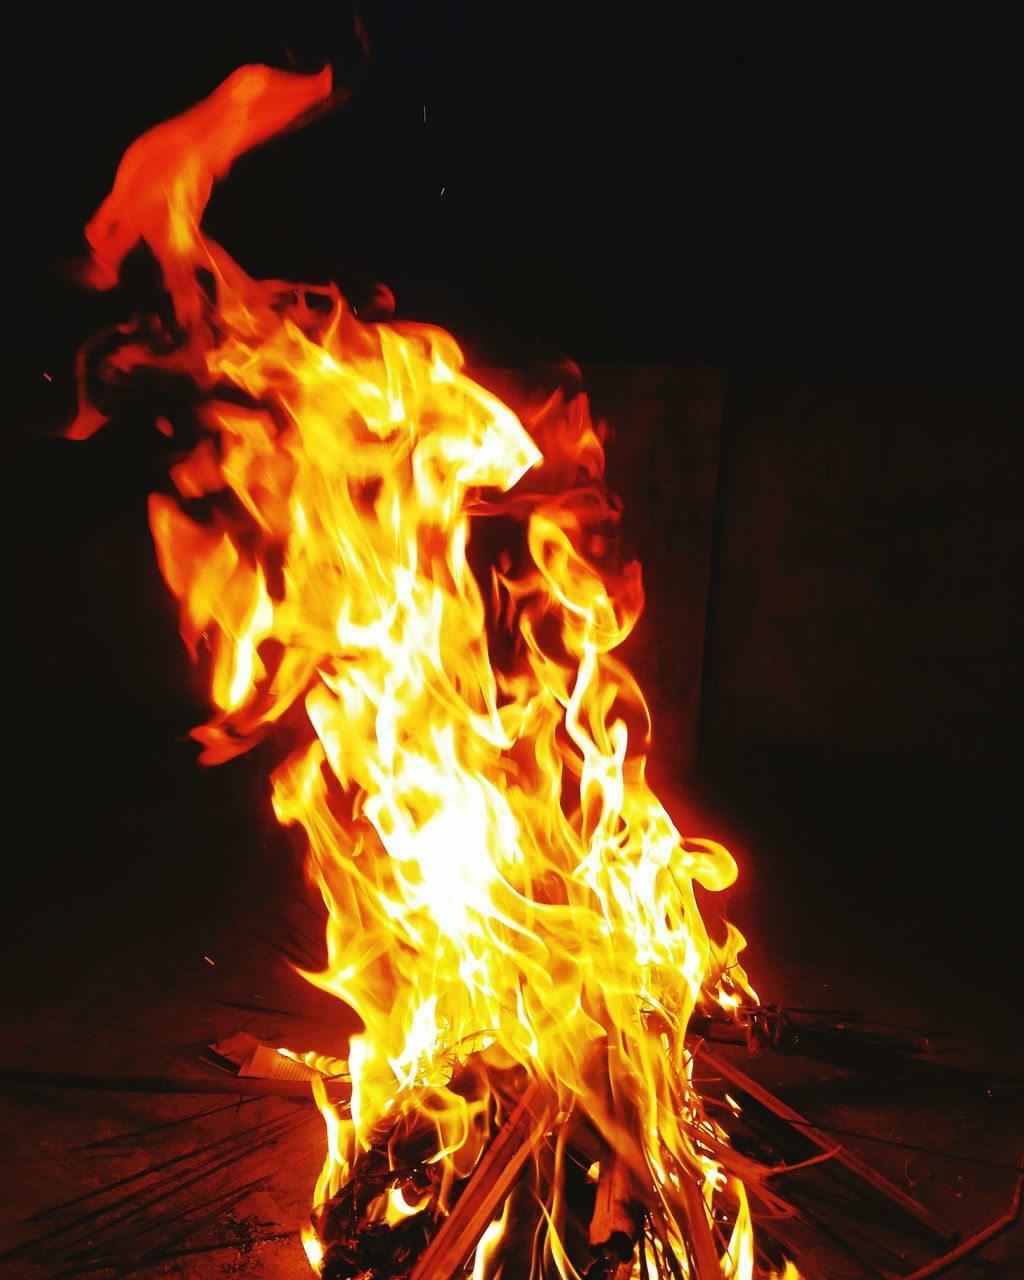 burning, flame, heat - temperature, glowing, night, no people, close-up, outdoors, bonfire